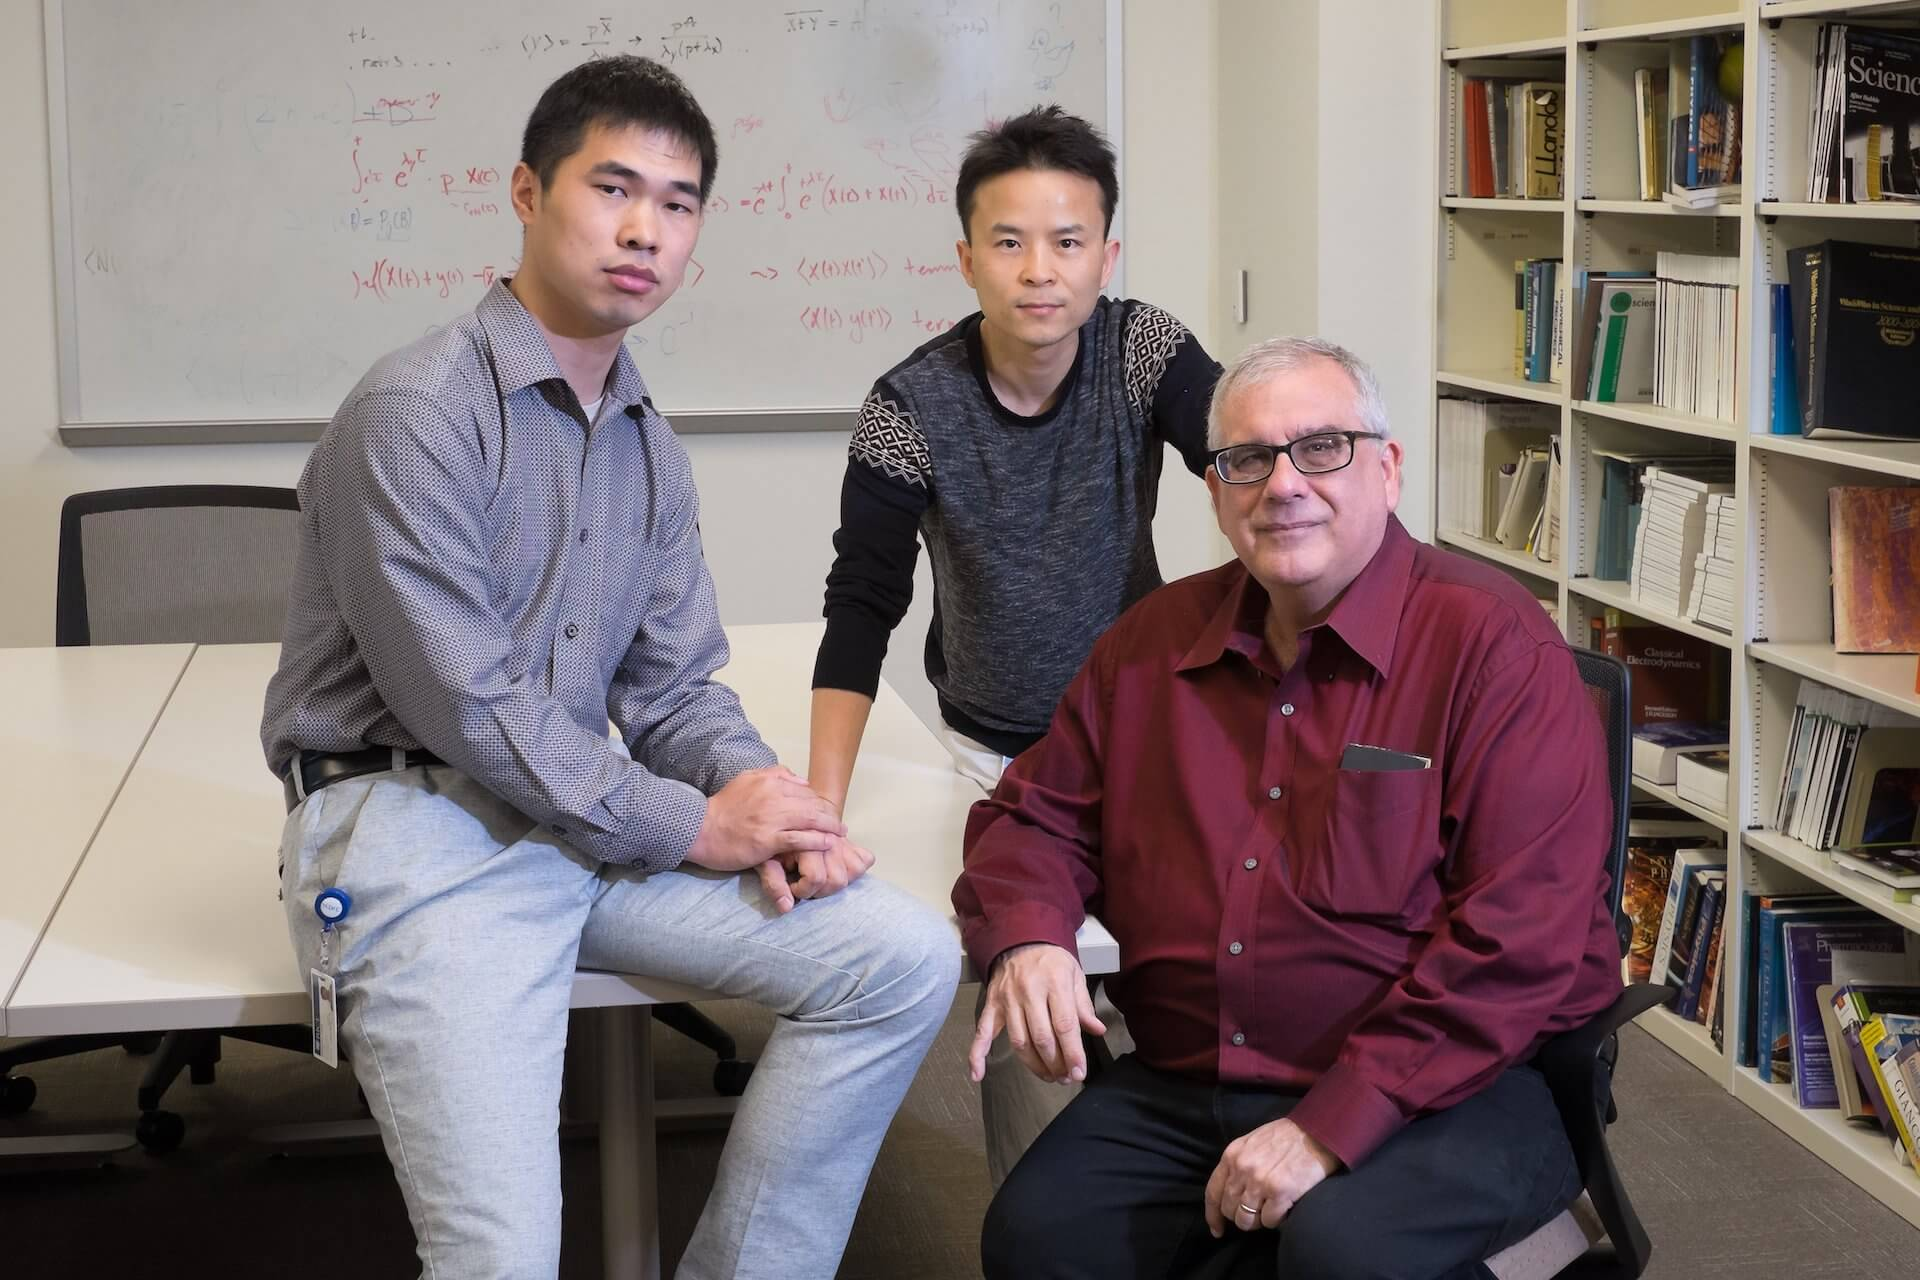 From left, Rice University graduate student Mingchen Chen, postdoctoral researcher Weihua Zheng and theoretical biological physicist Peter Wolynes co-authored a paper explaining a complex feedback loop between actin filaments and aggregating proteins in neurons that appears to be key to the formation of long-term memories. (Credit: Jeff Fitlow)